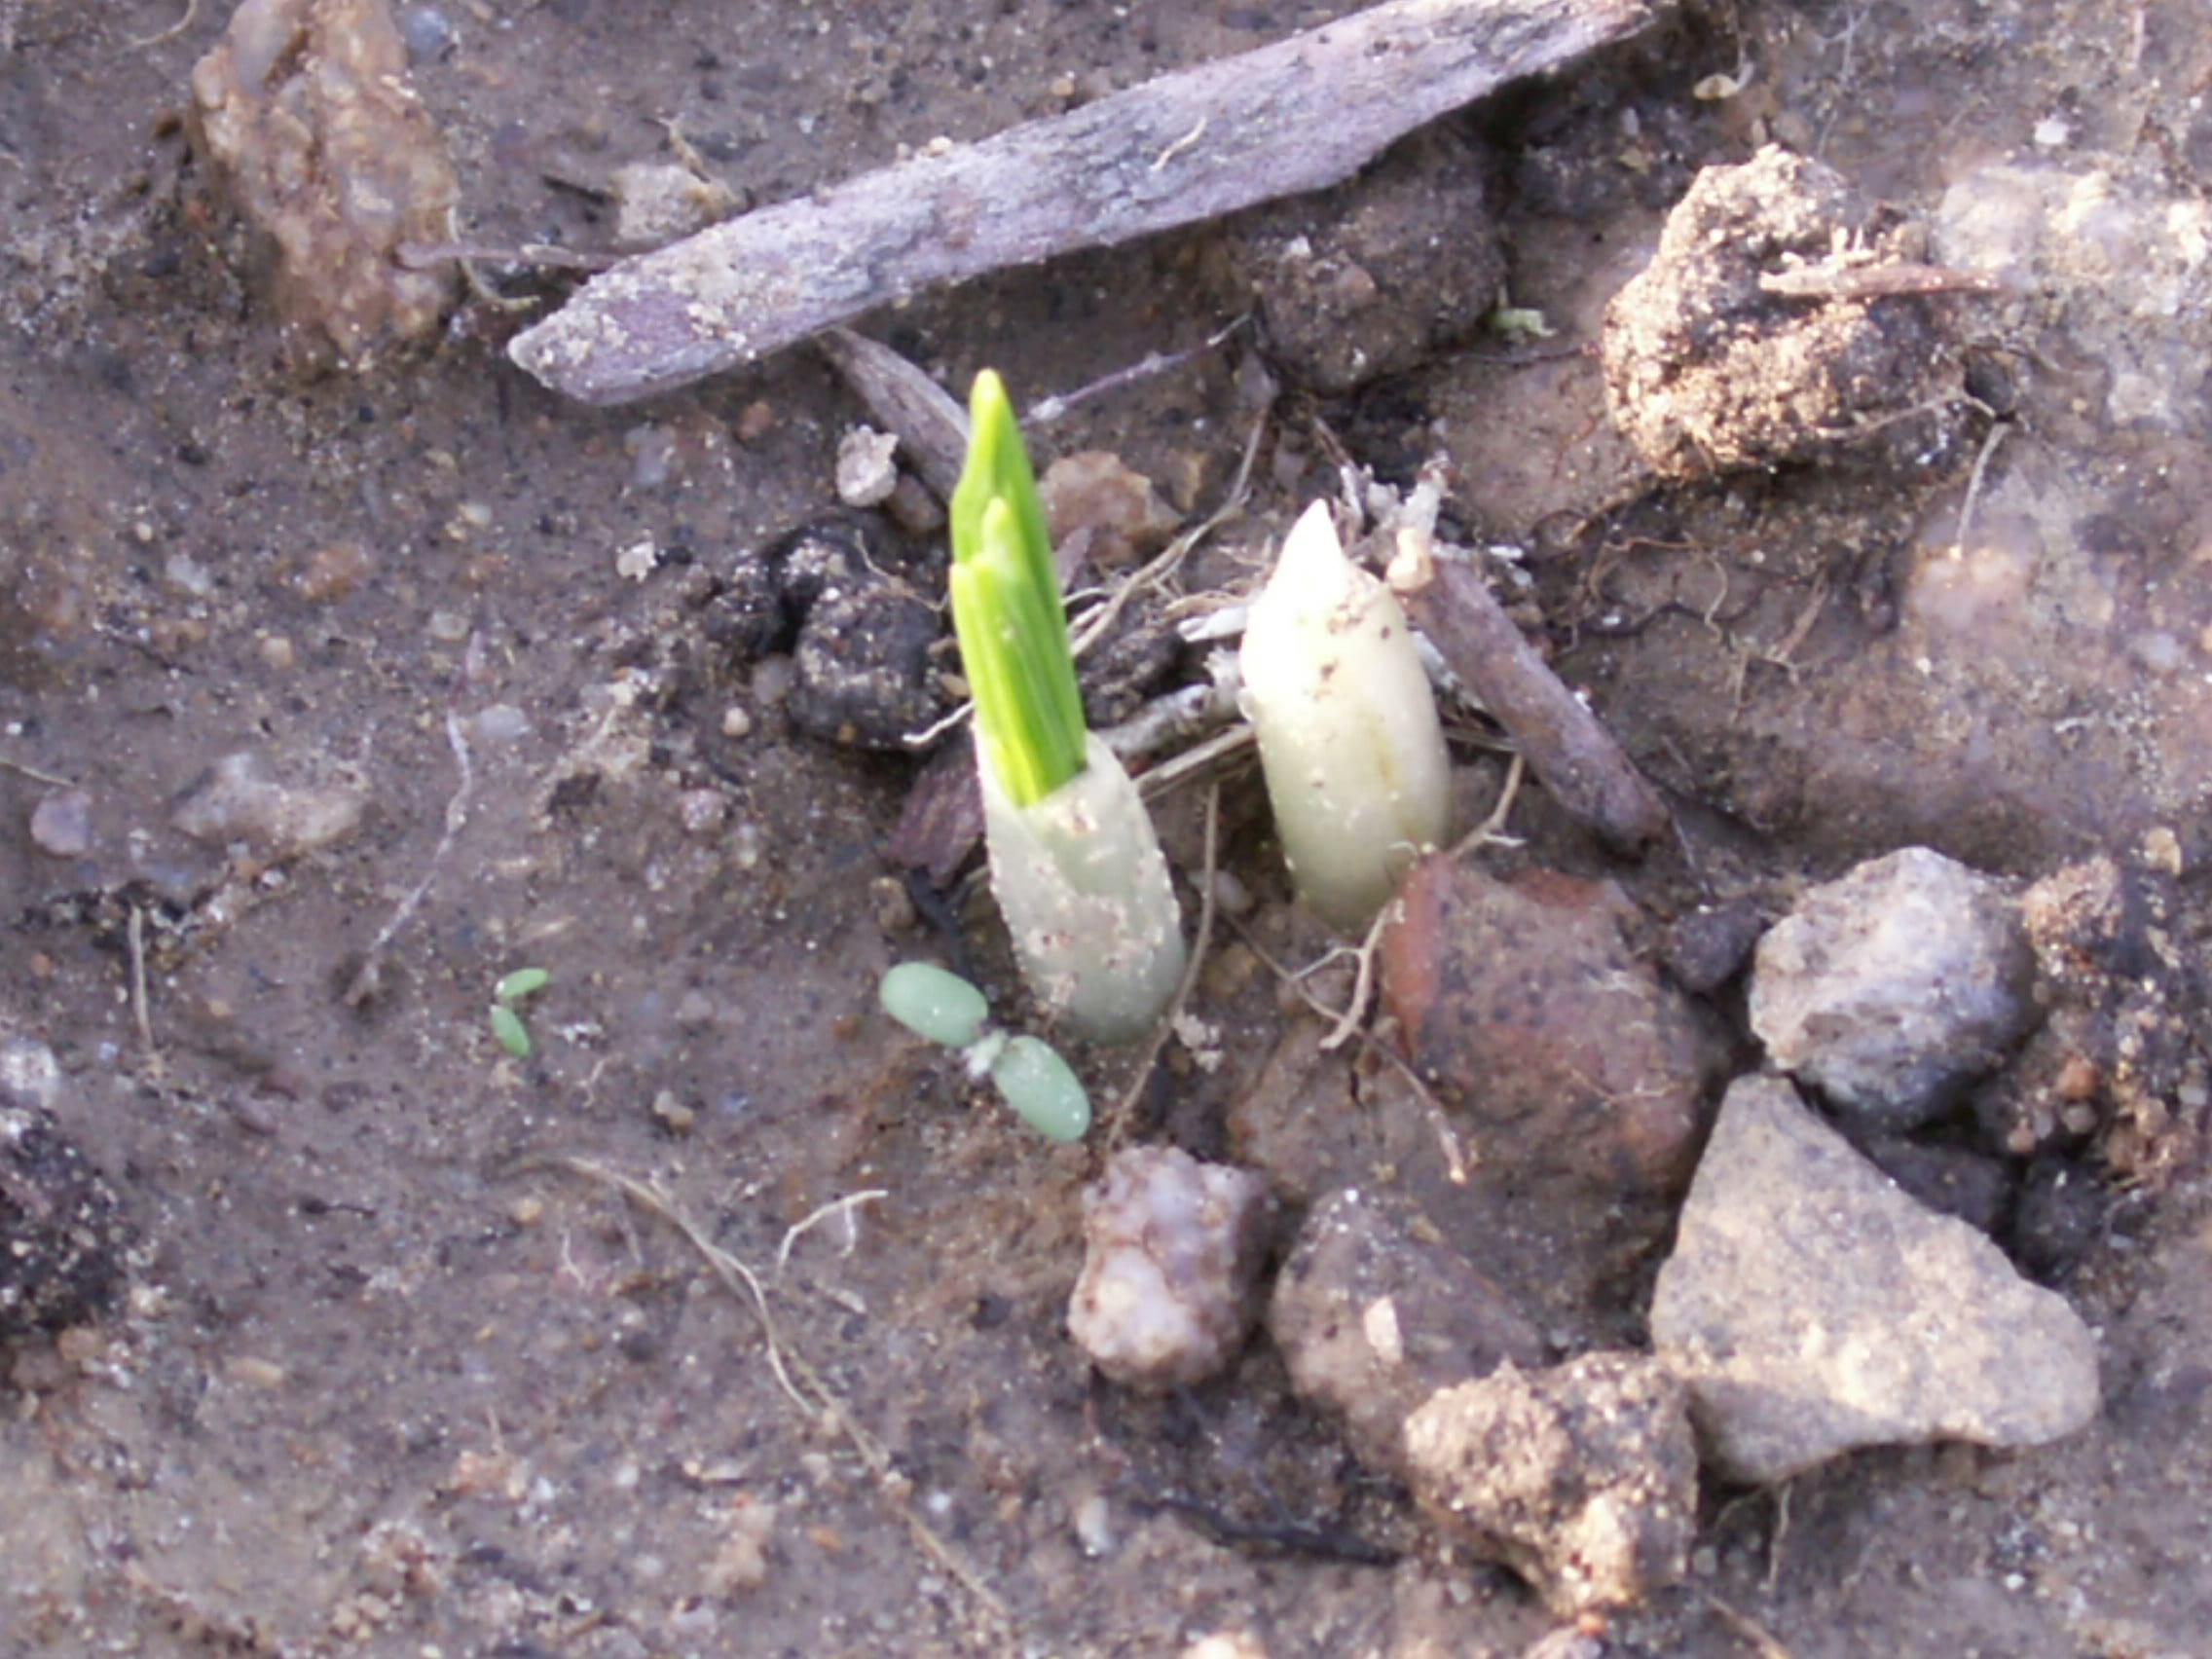 New saffron shoots